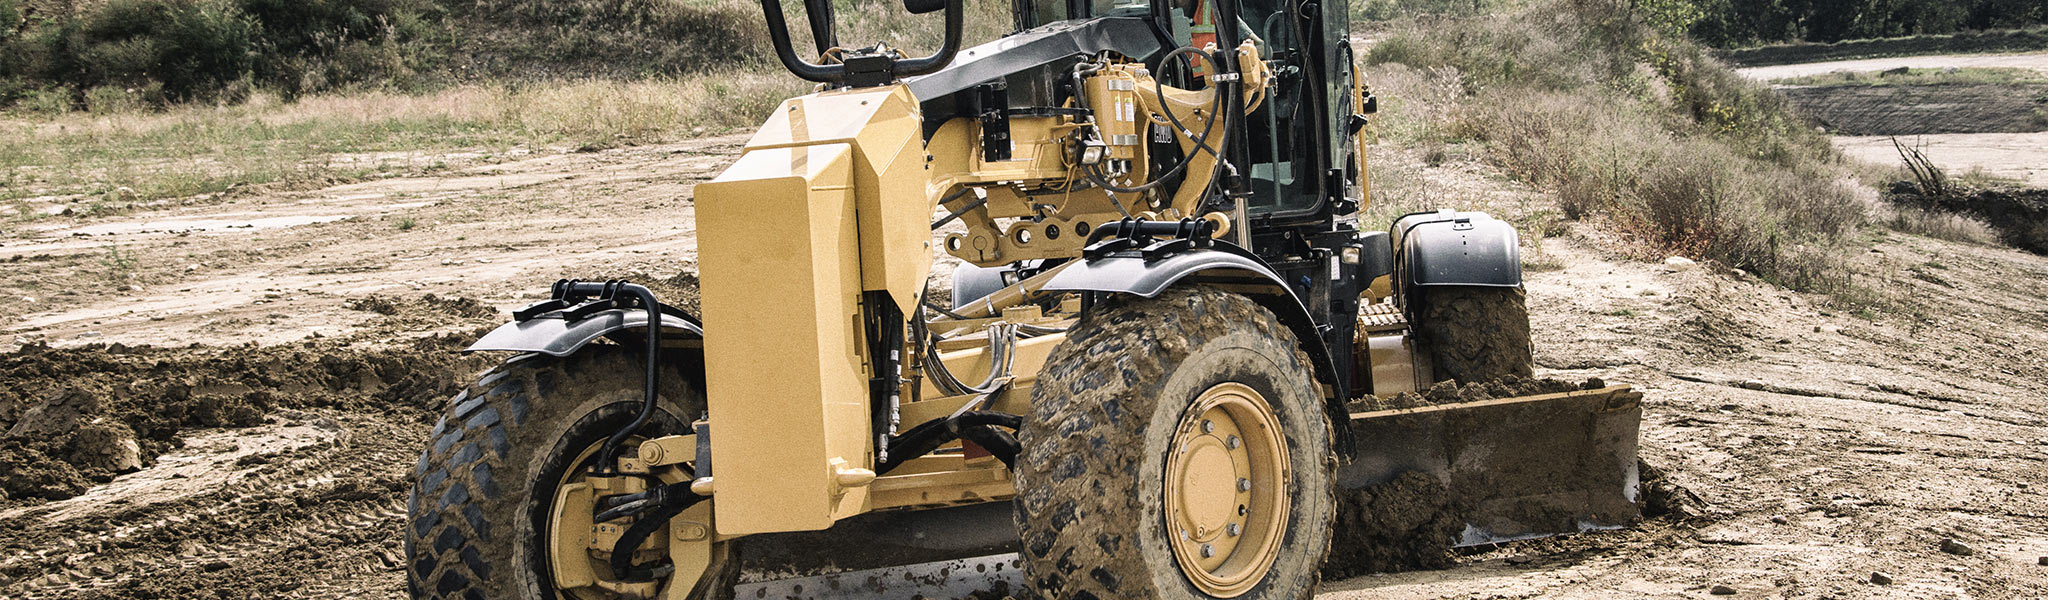 The Cat® 12M3, like all M Series 3 Motor Graders, has been upgraded to Tier 4 Final compliance.